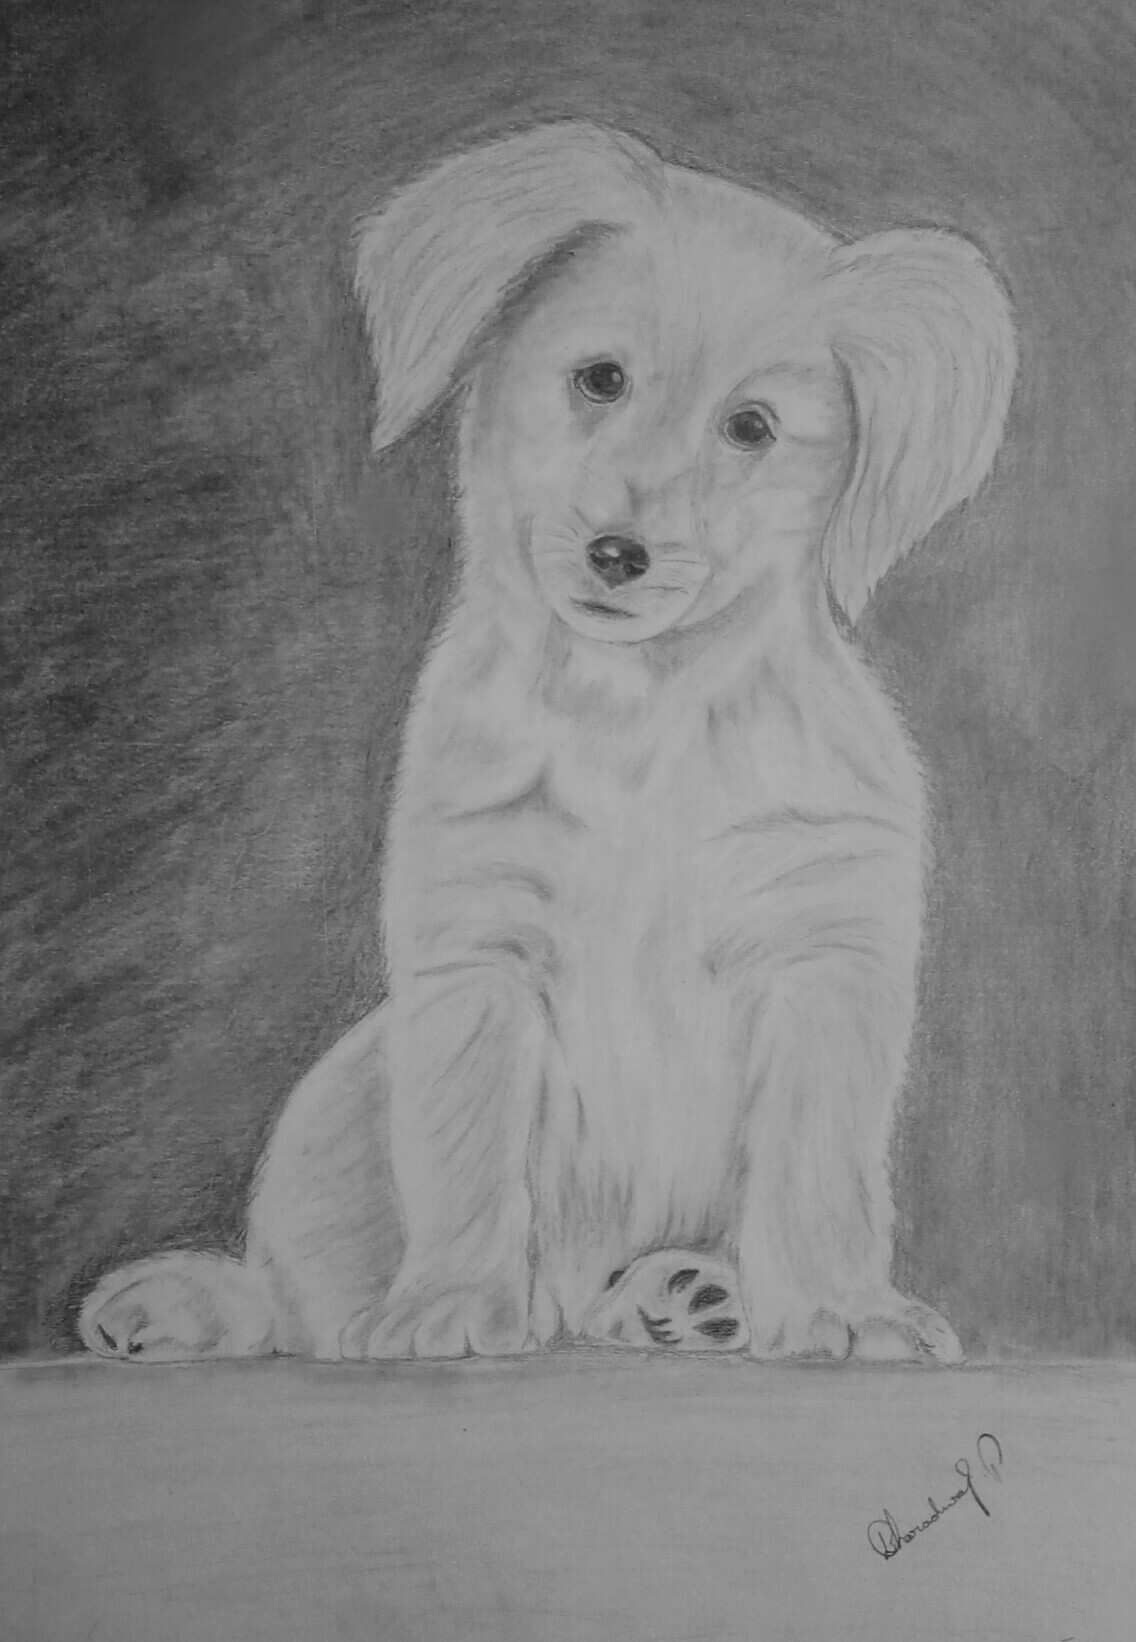 Cute Puppy drawing Showflipper